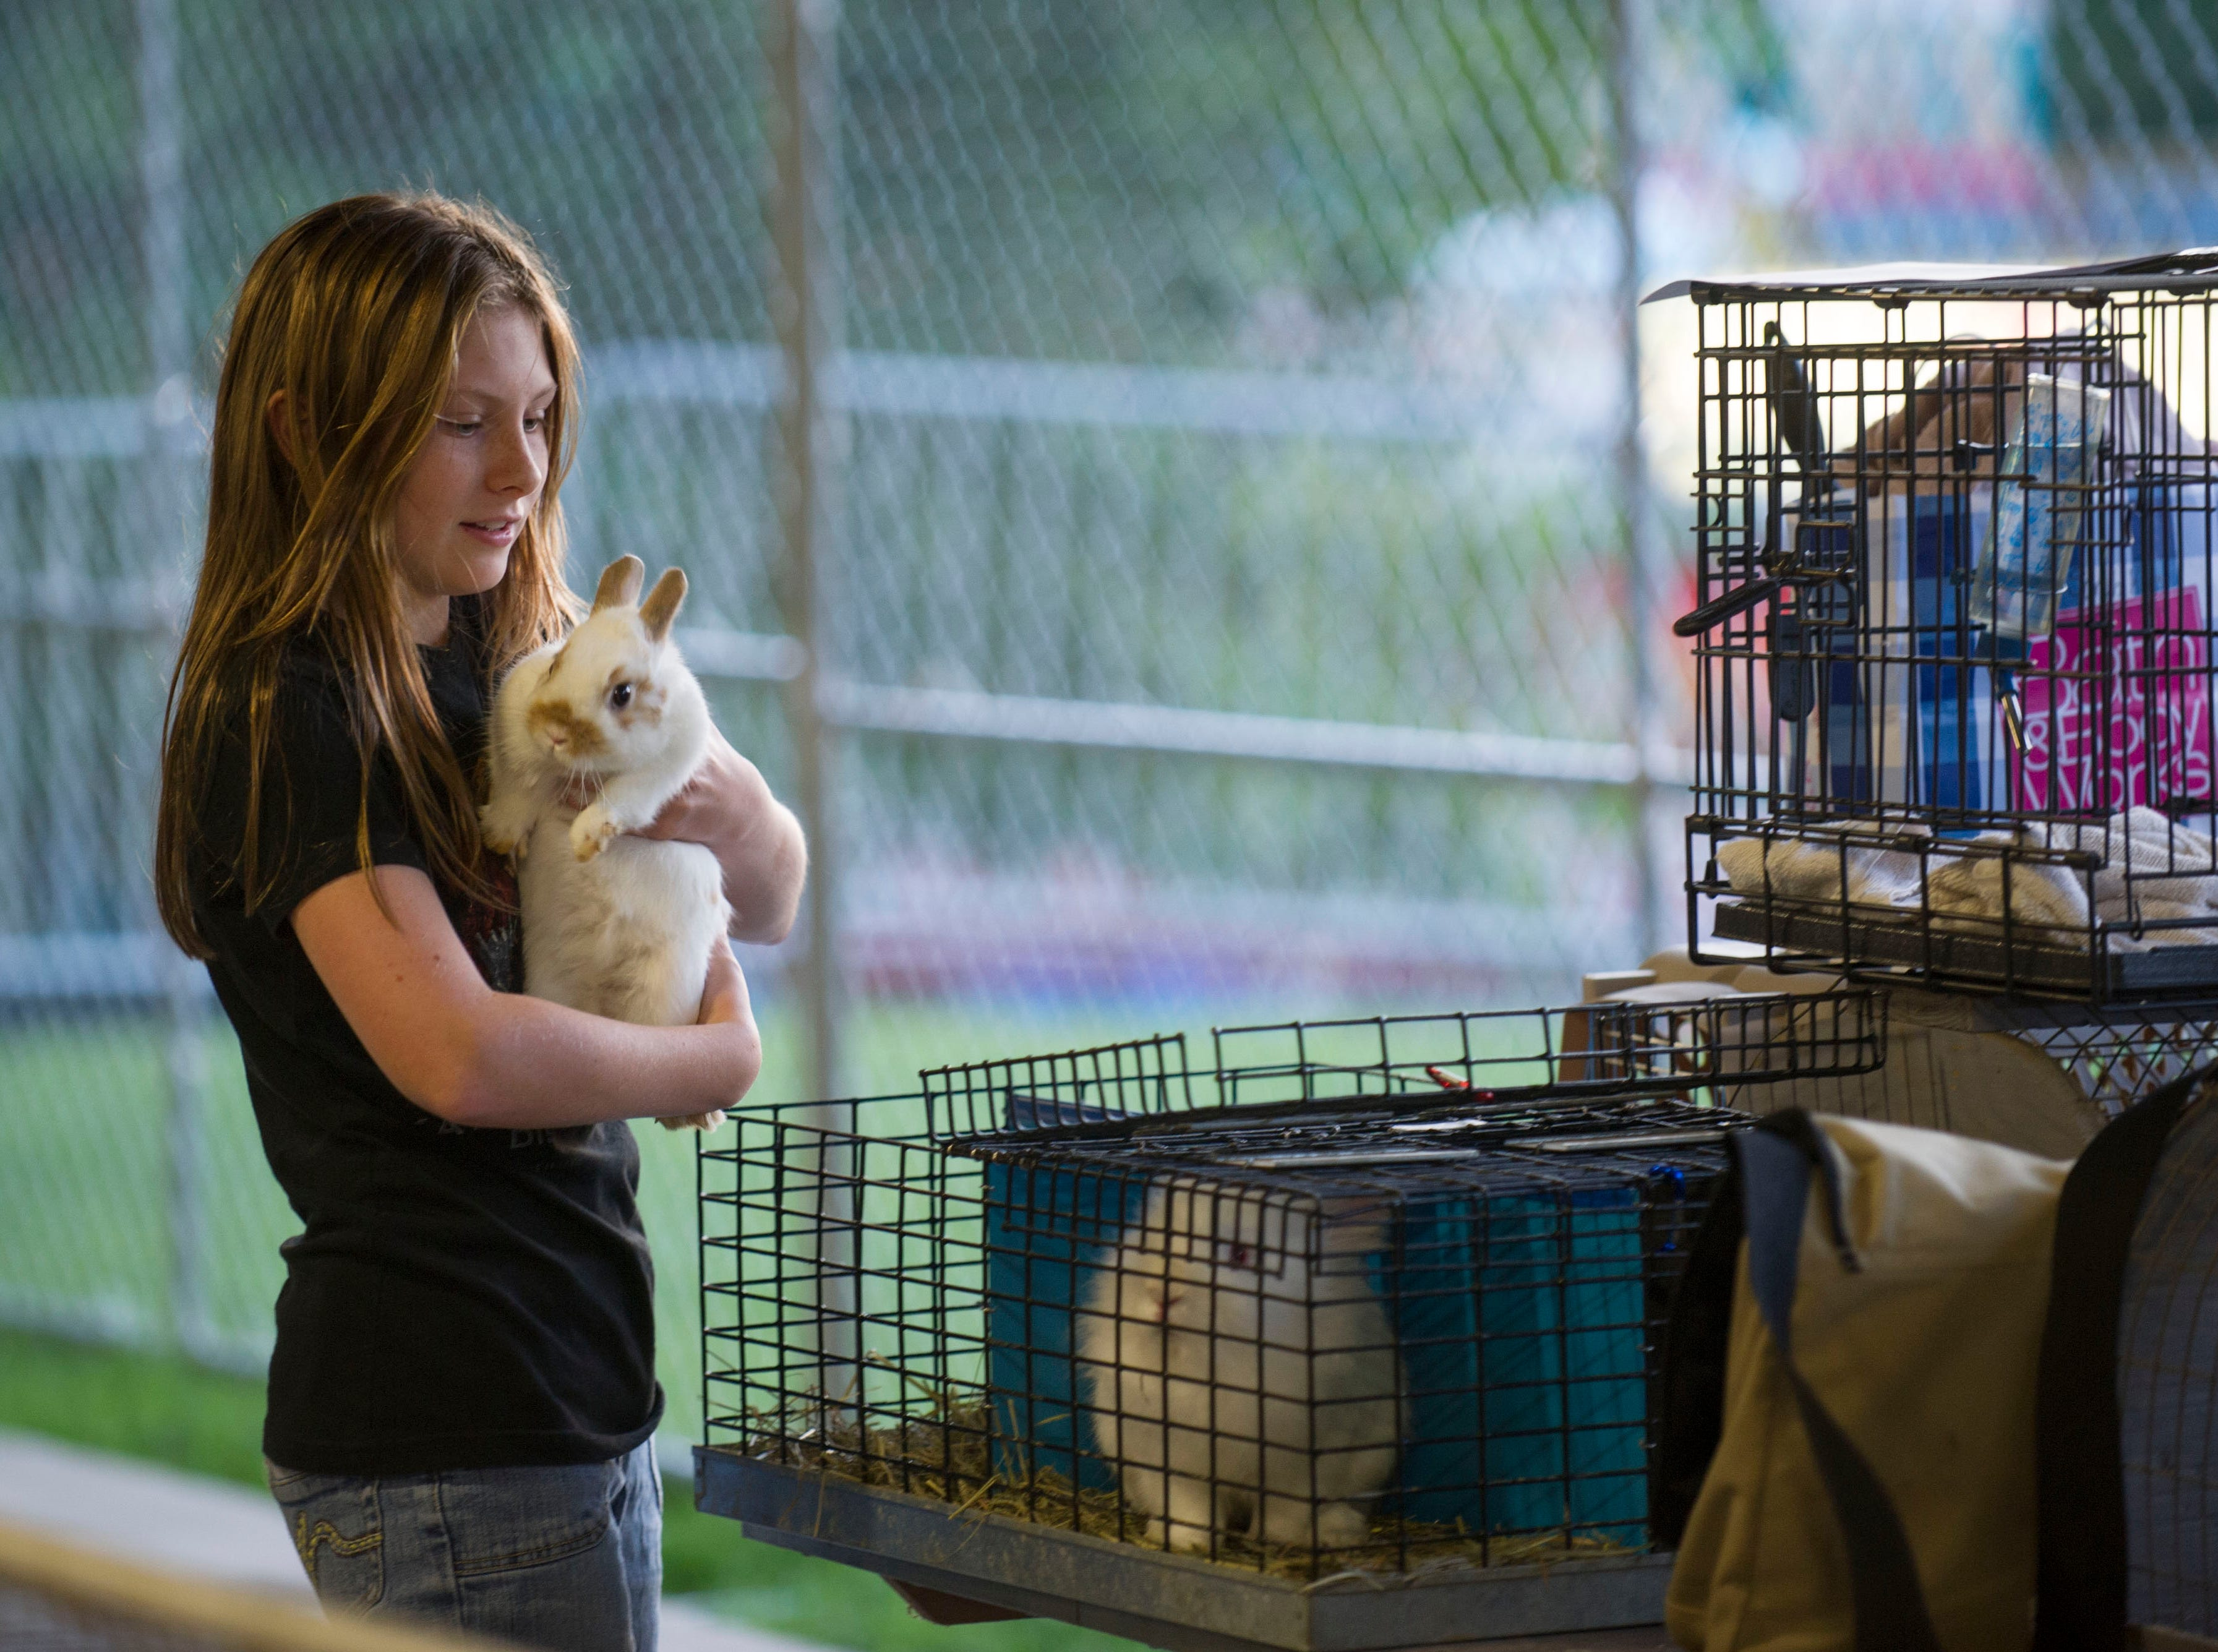 Sabrina Johnson tends to her Netherland dwarf rabbit named 'Freckles' at the Tennessee Valley Fair on Thursday, Sept. 5, 2013, at Chilhowee Park. The Loudon County 4-H member is readying the 2-year-old for competition in the senior buck category.